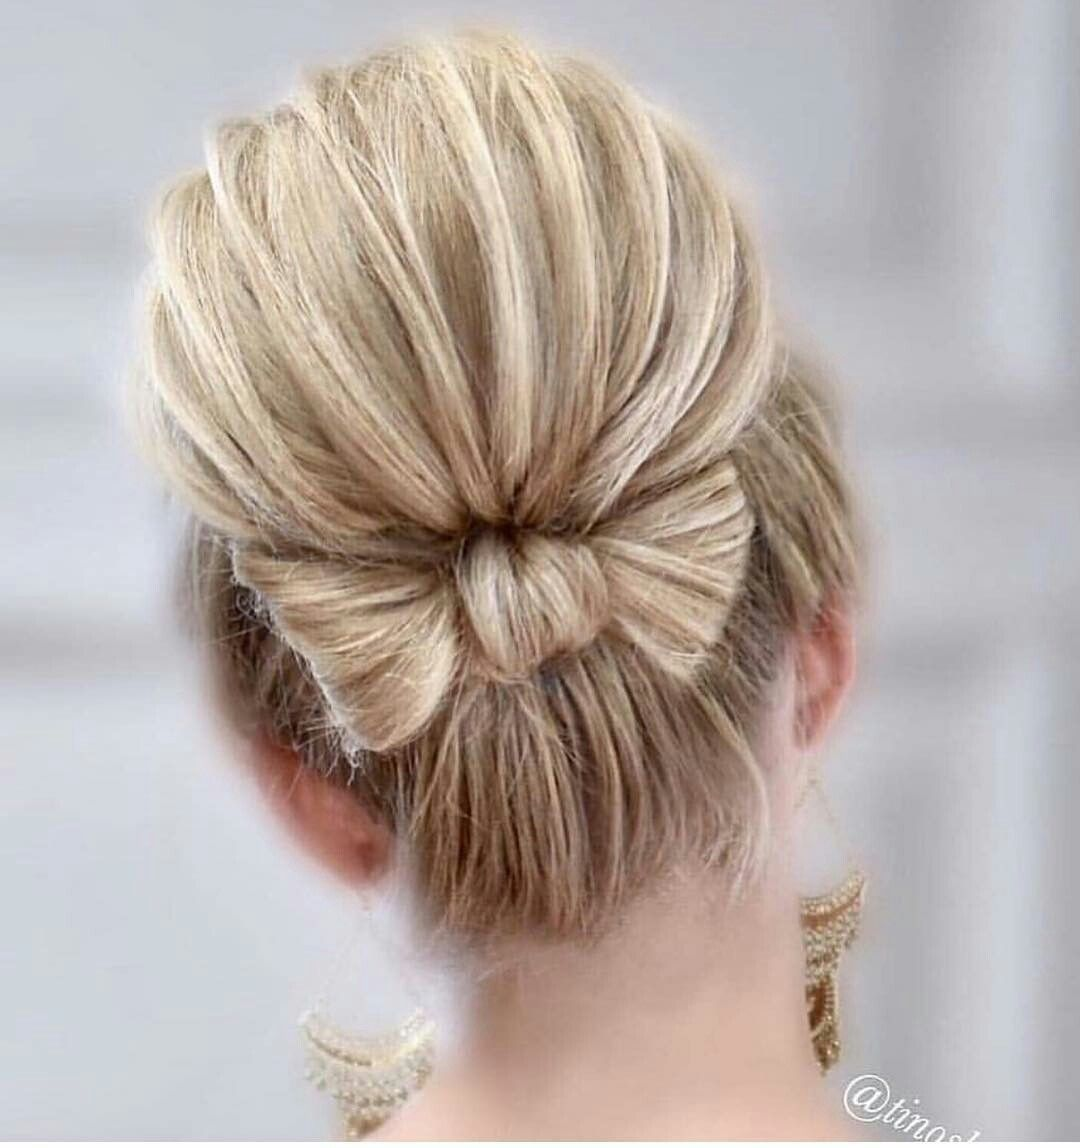 Pin By Duhouzz On Hairdo Hair Styles